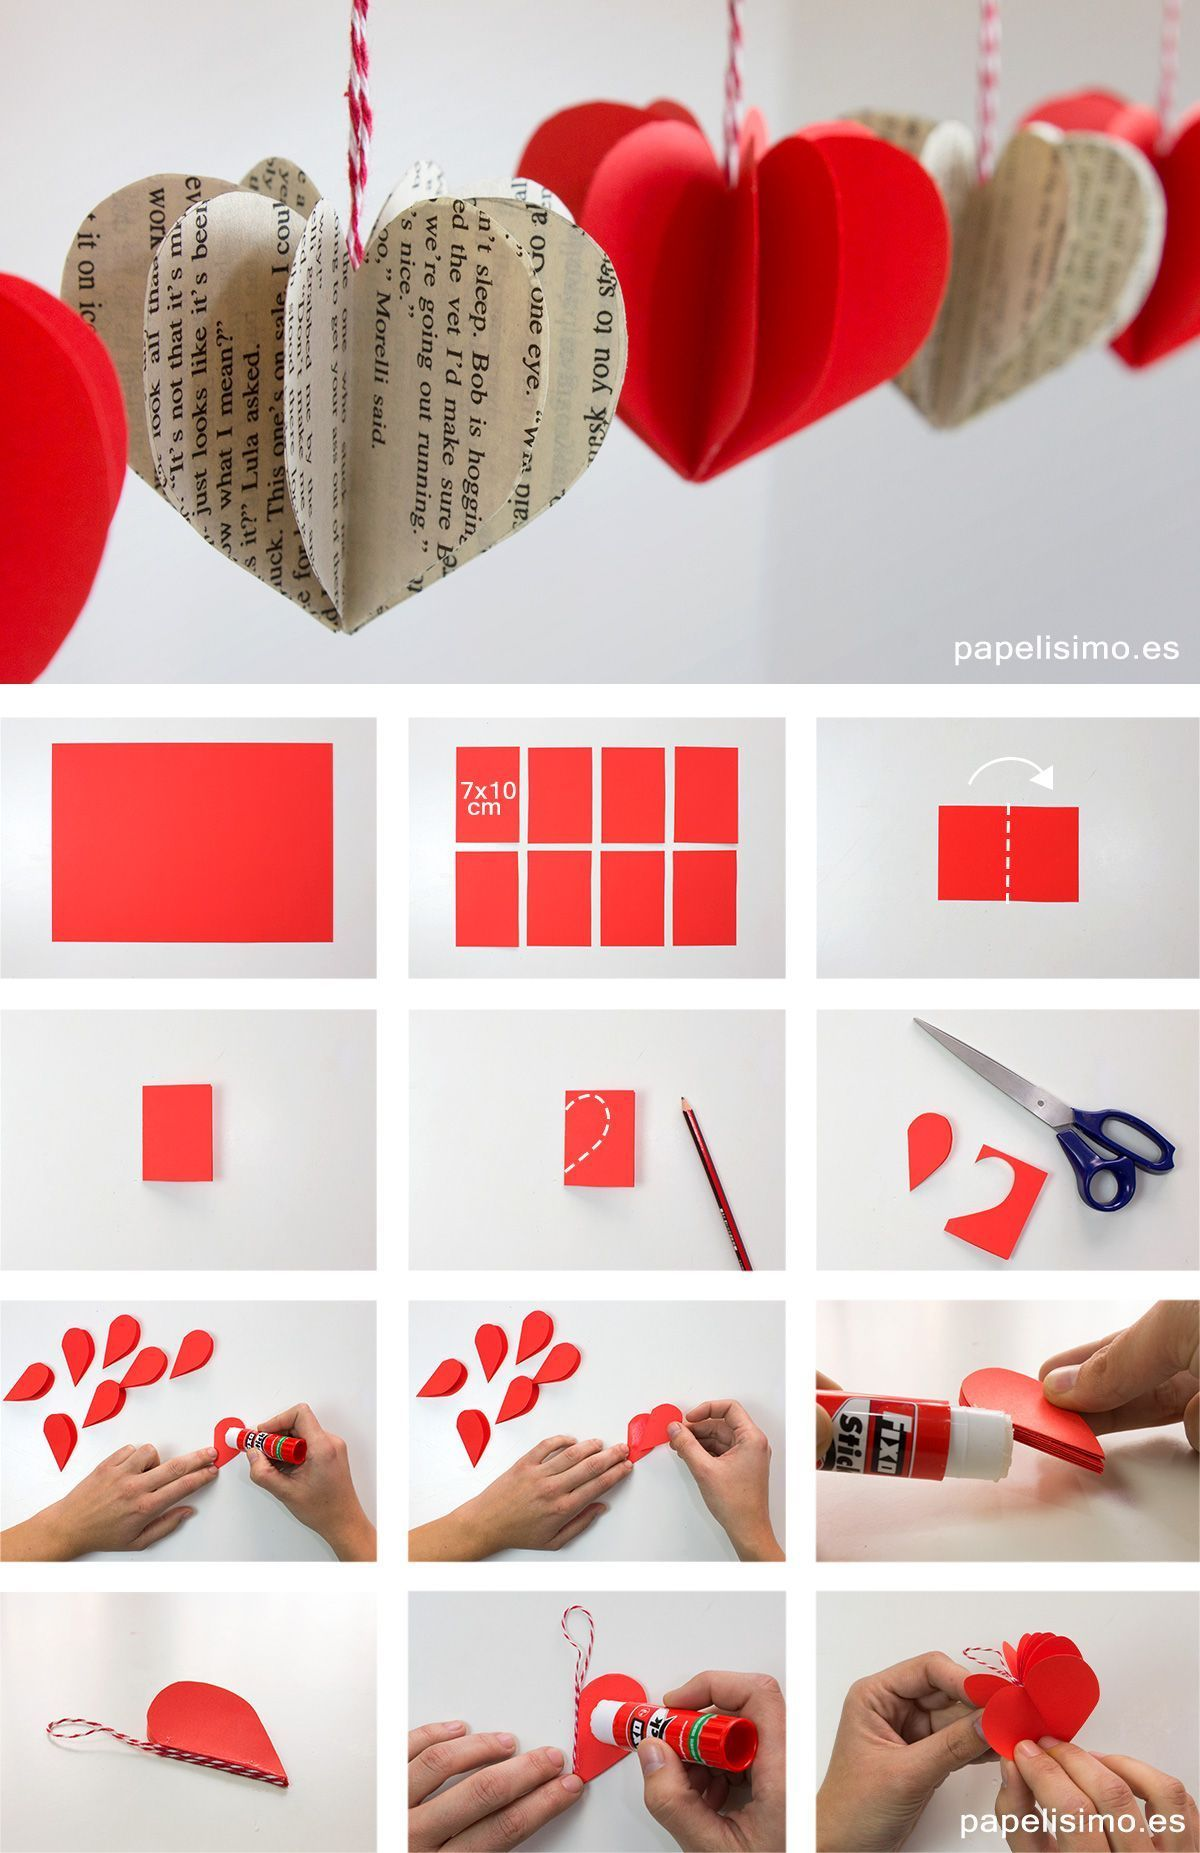 22 Valentine's Day Crafts and DIY Ideas #craft